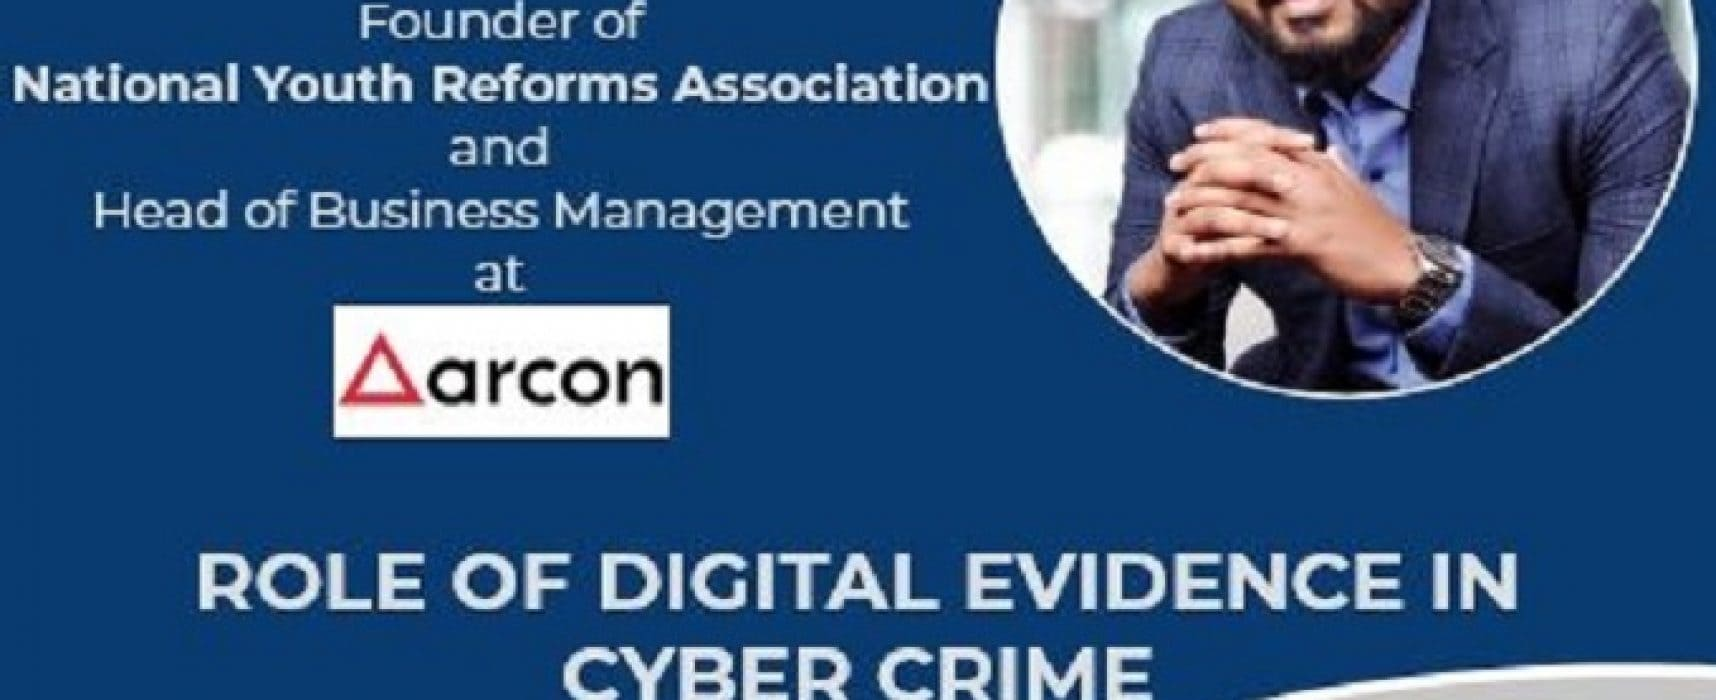 Role of Digital Evidence in Cyber Crime